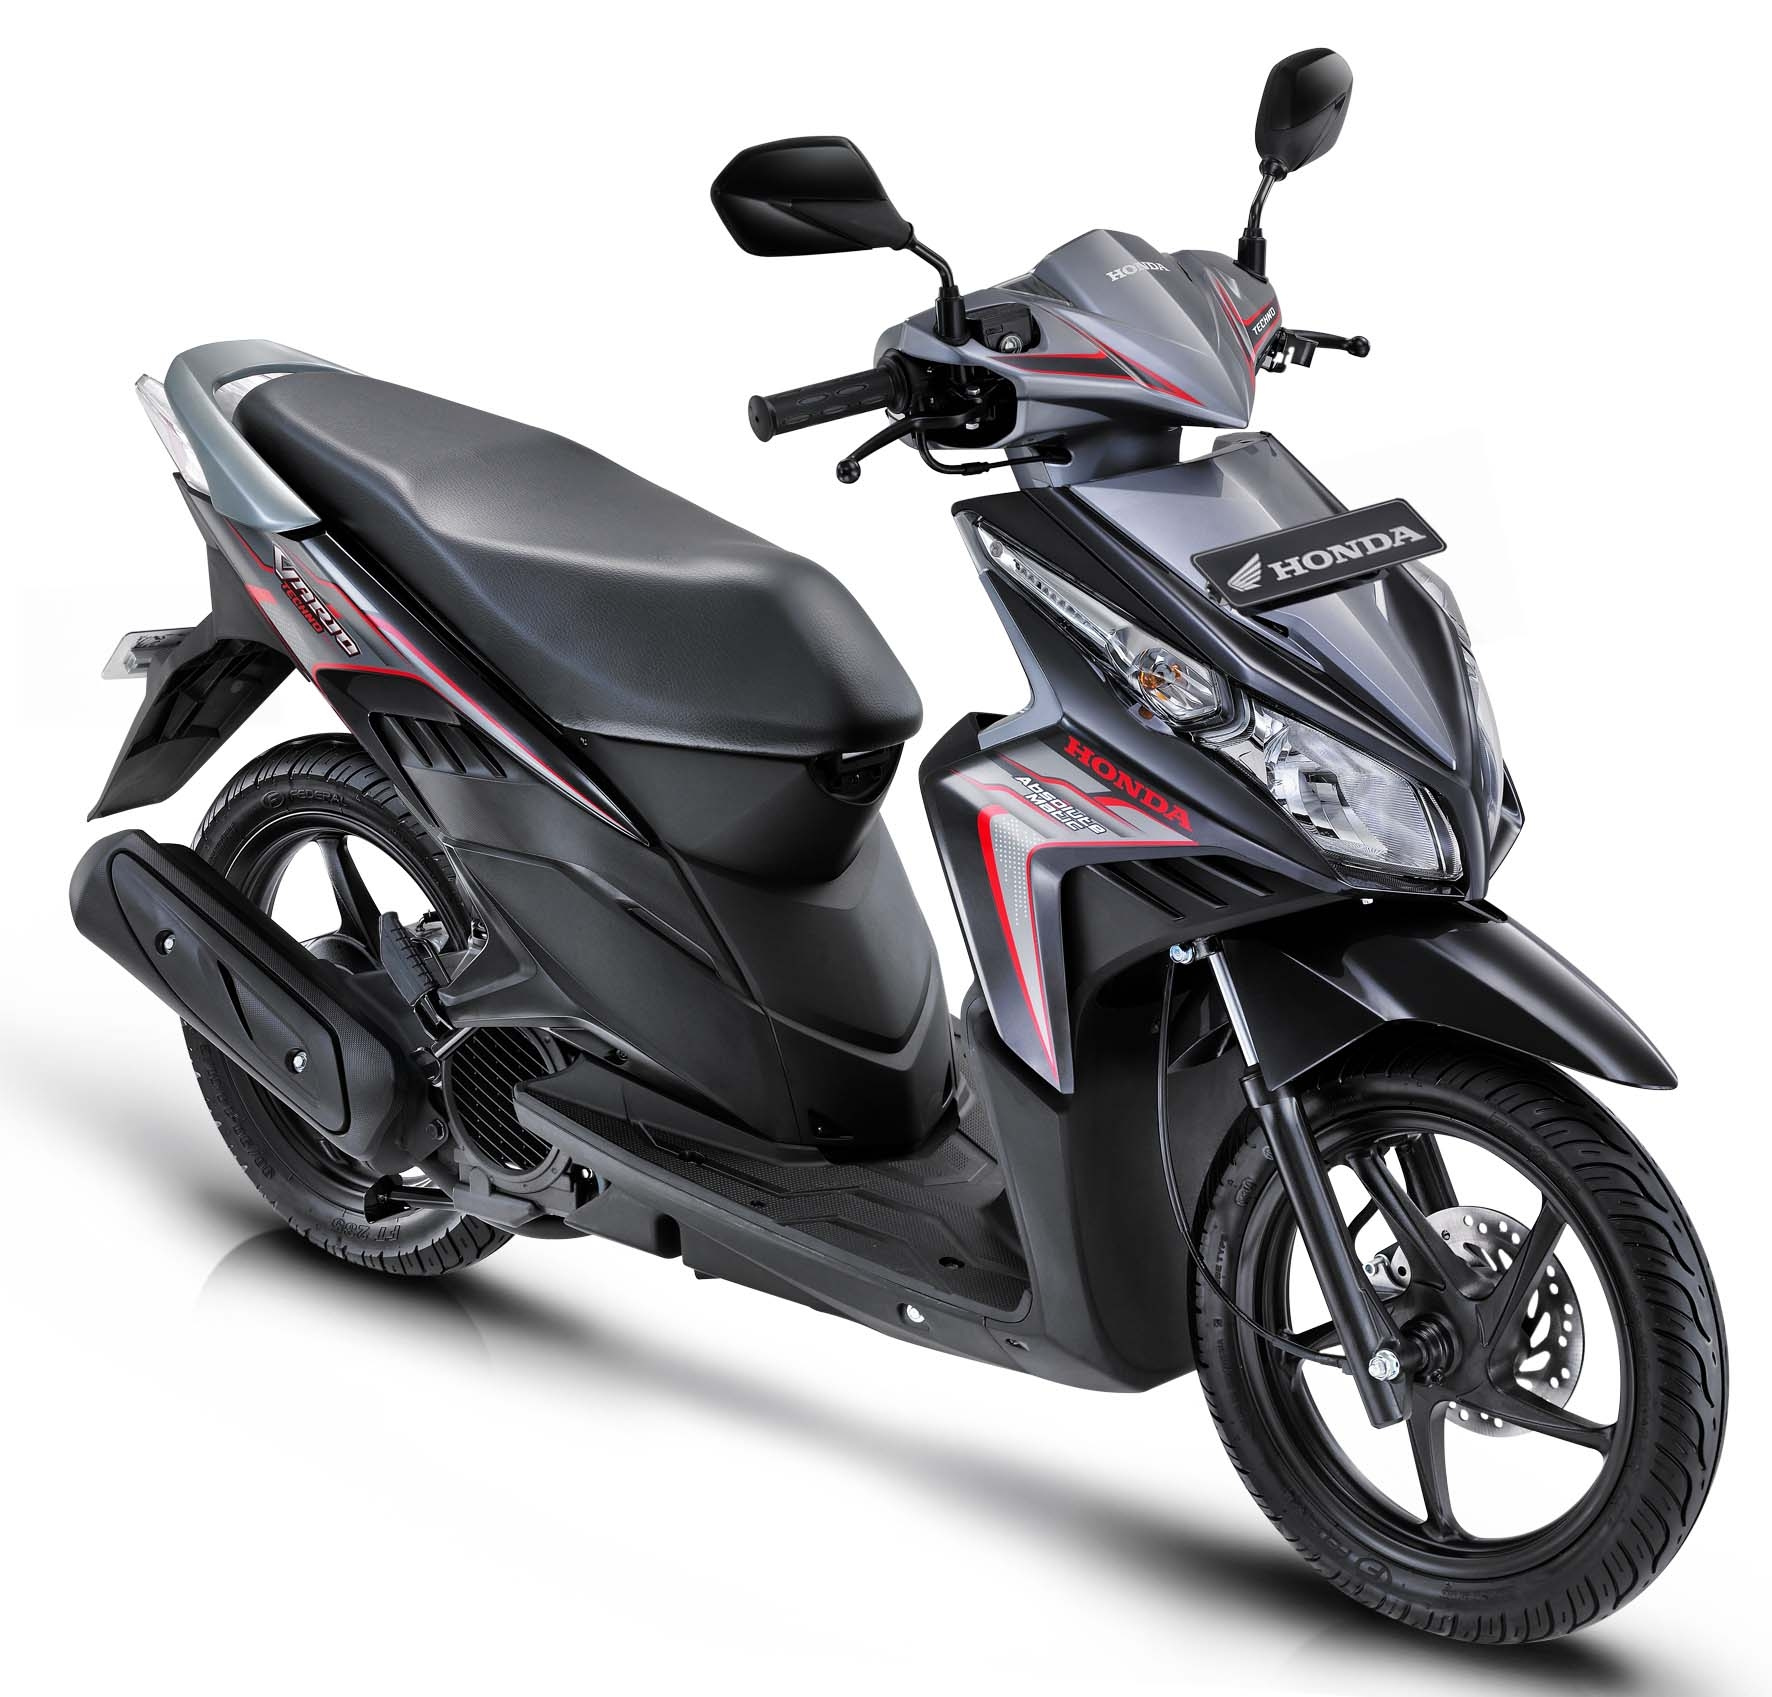 Vario Techno 125:Motorcycle - blogspot.com